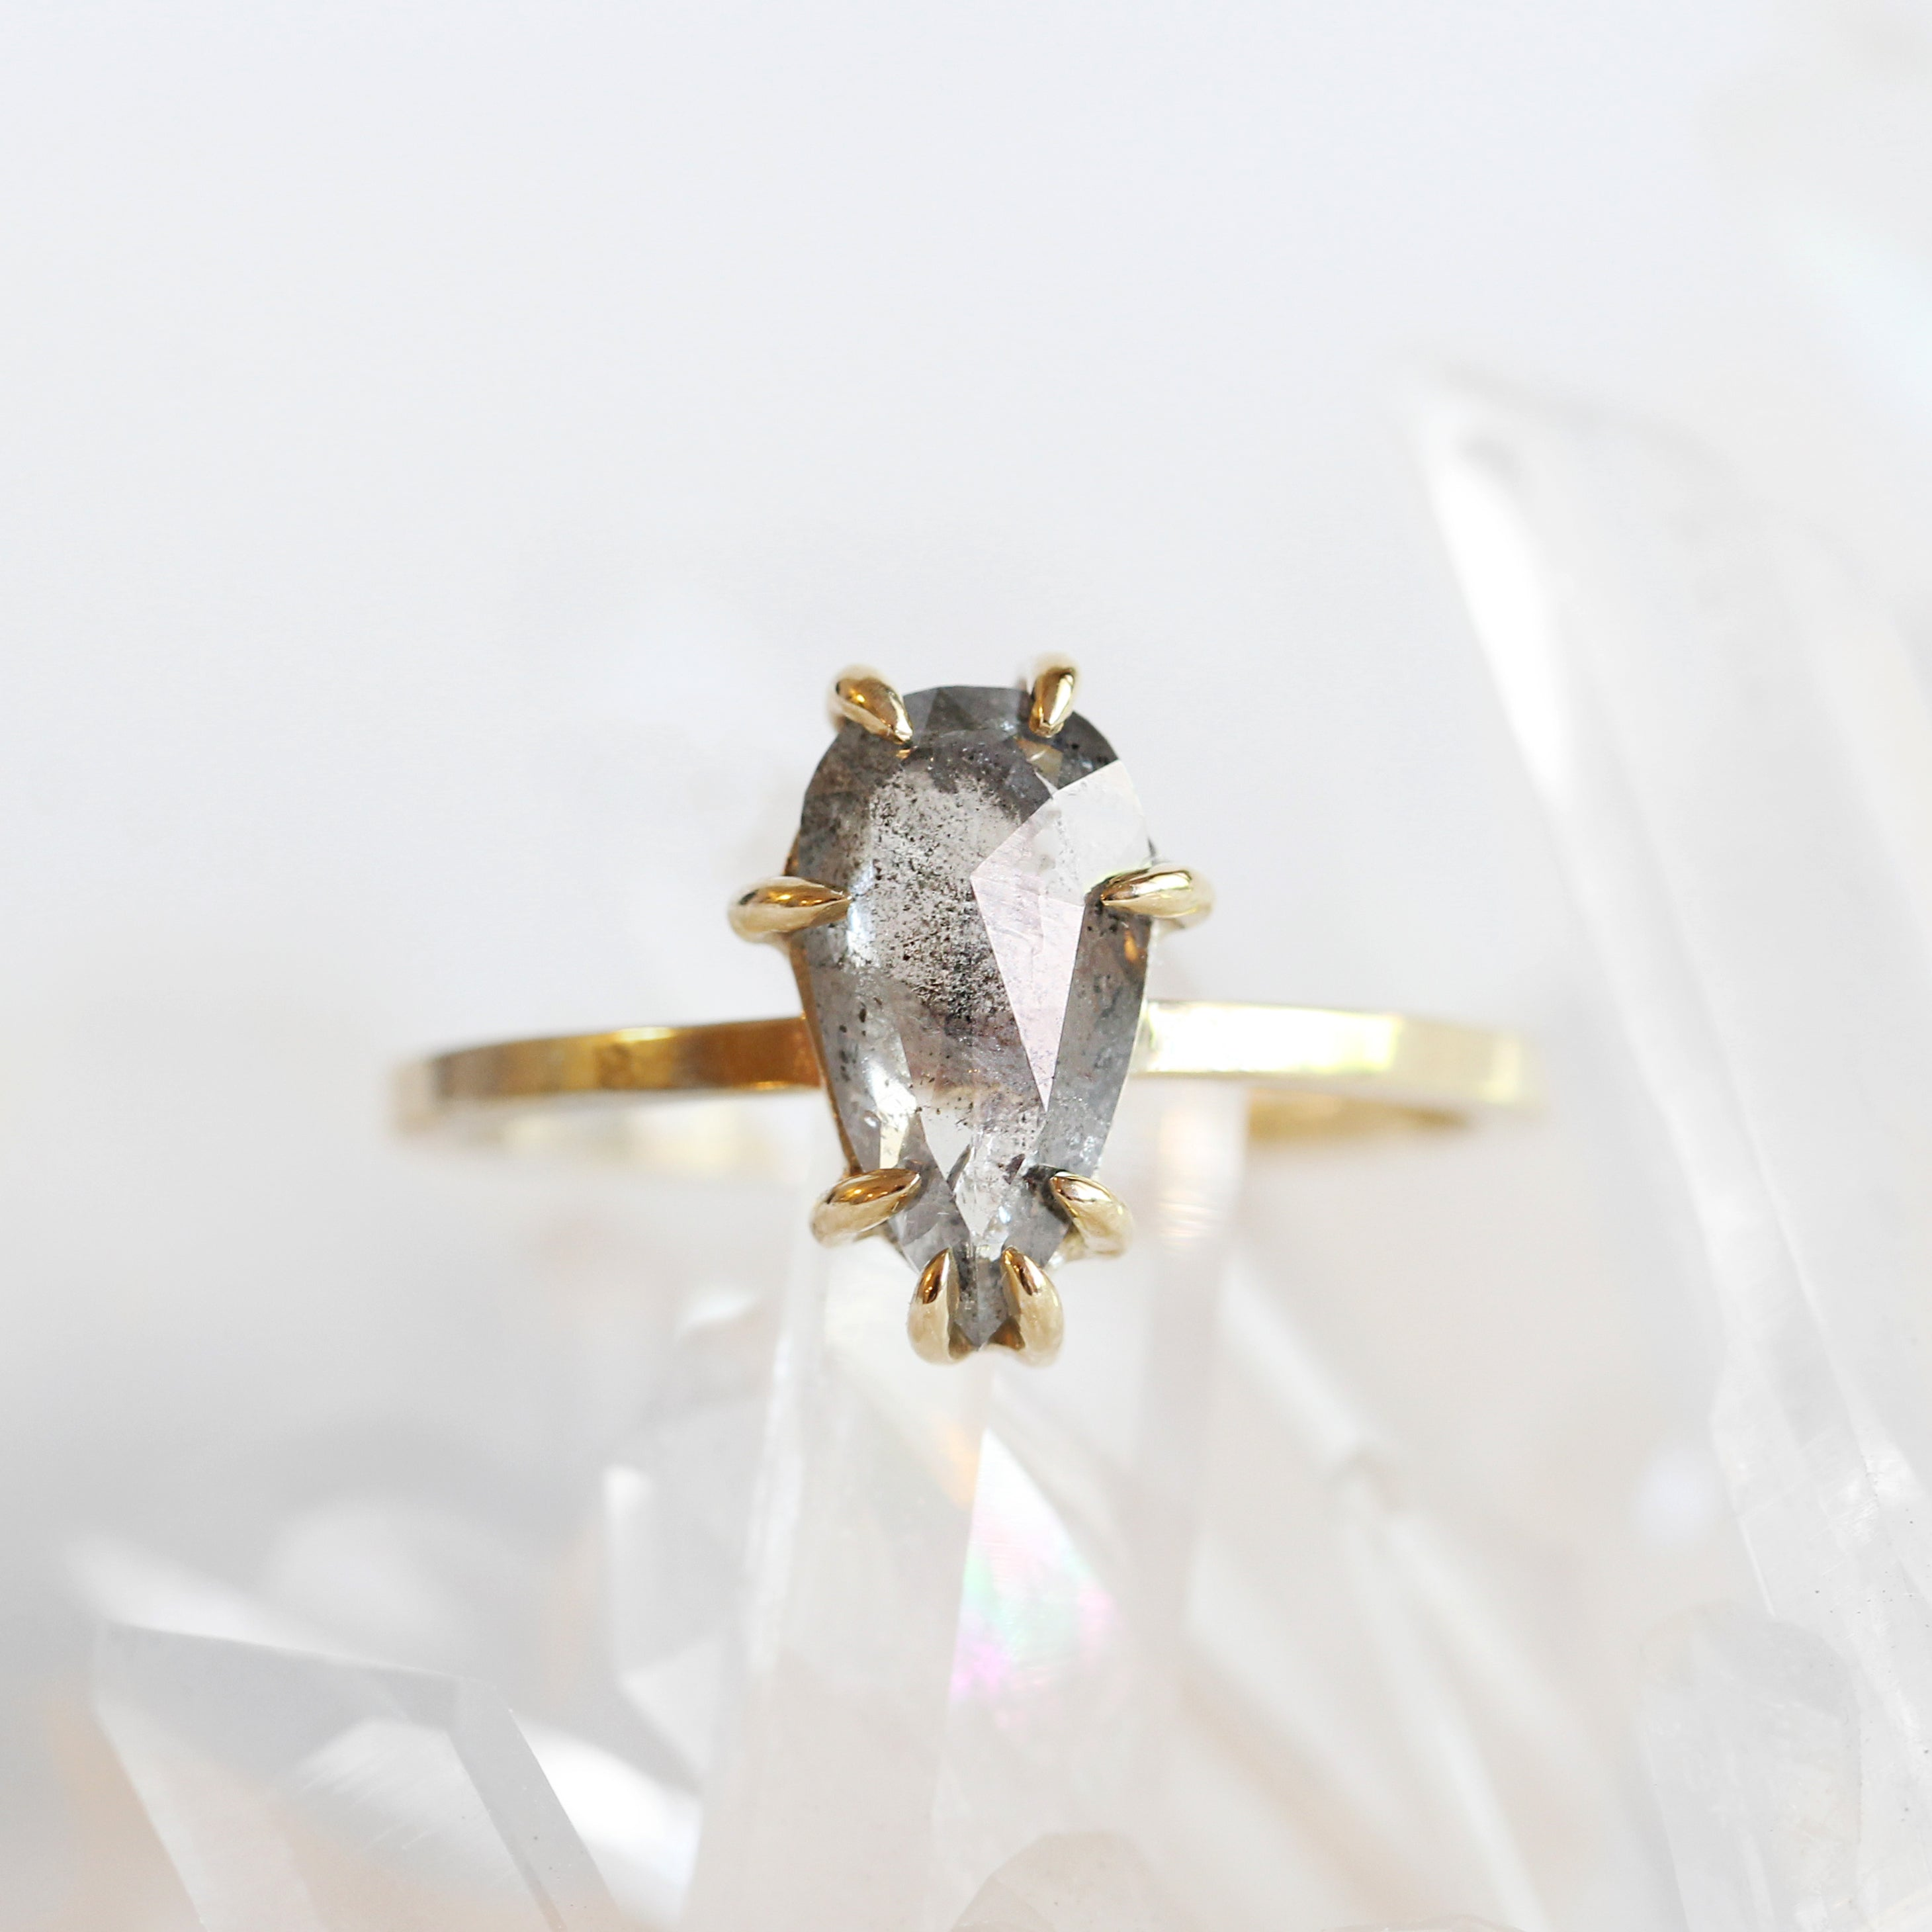 Raven Ring with Light Gray Celestial Pear Diamond in 14k Yellow Gold - Ready to Size and Ship